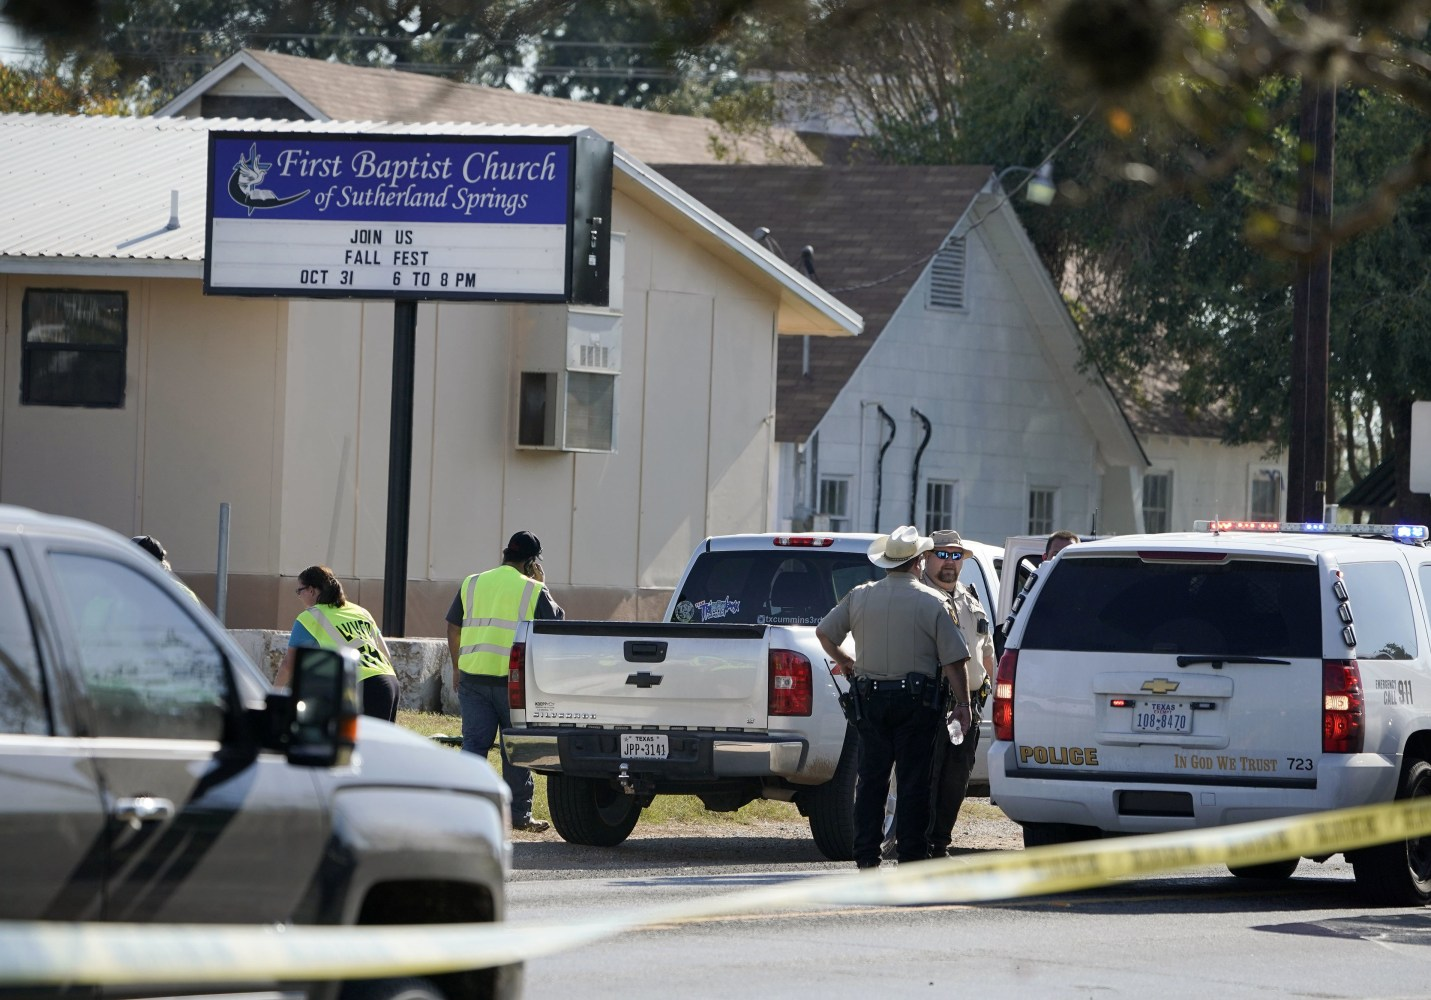 Image: Law enforcement officers gather in front of First Baptist Church of Sutherland Springs after a fatal shooting